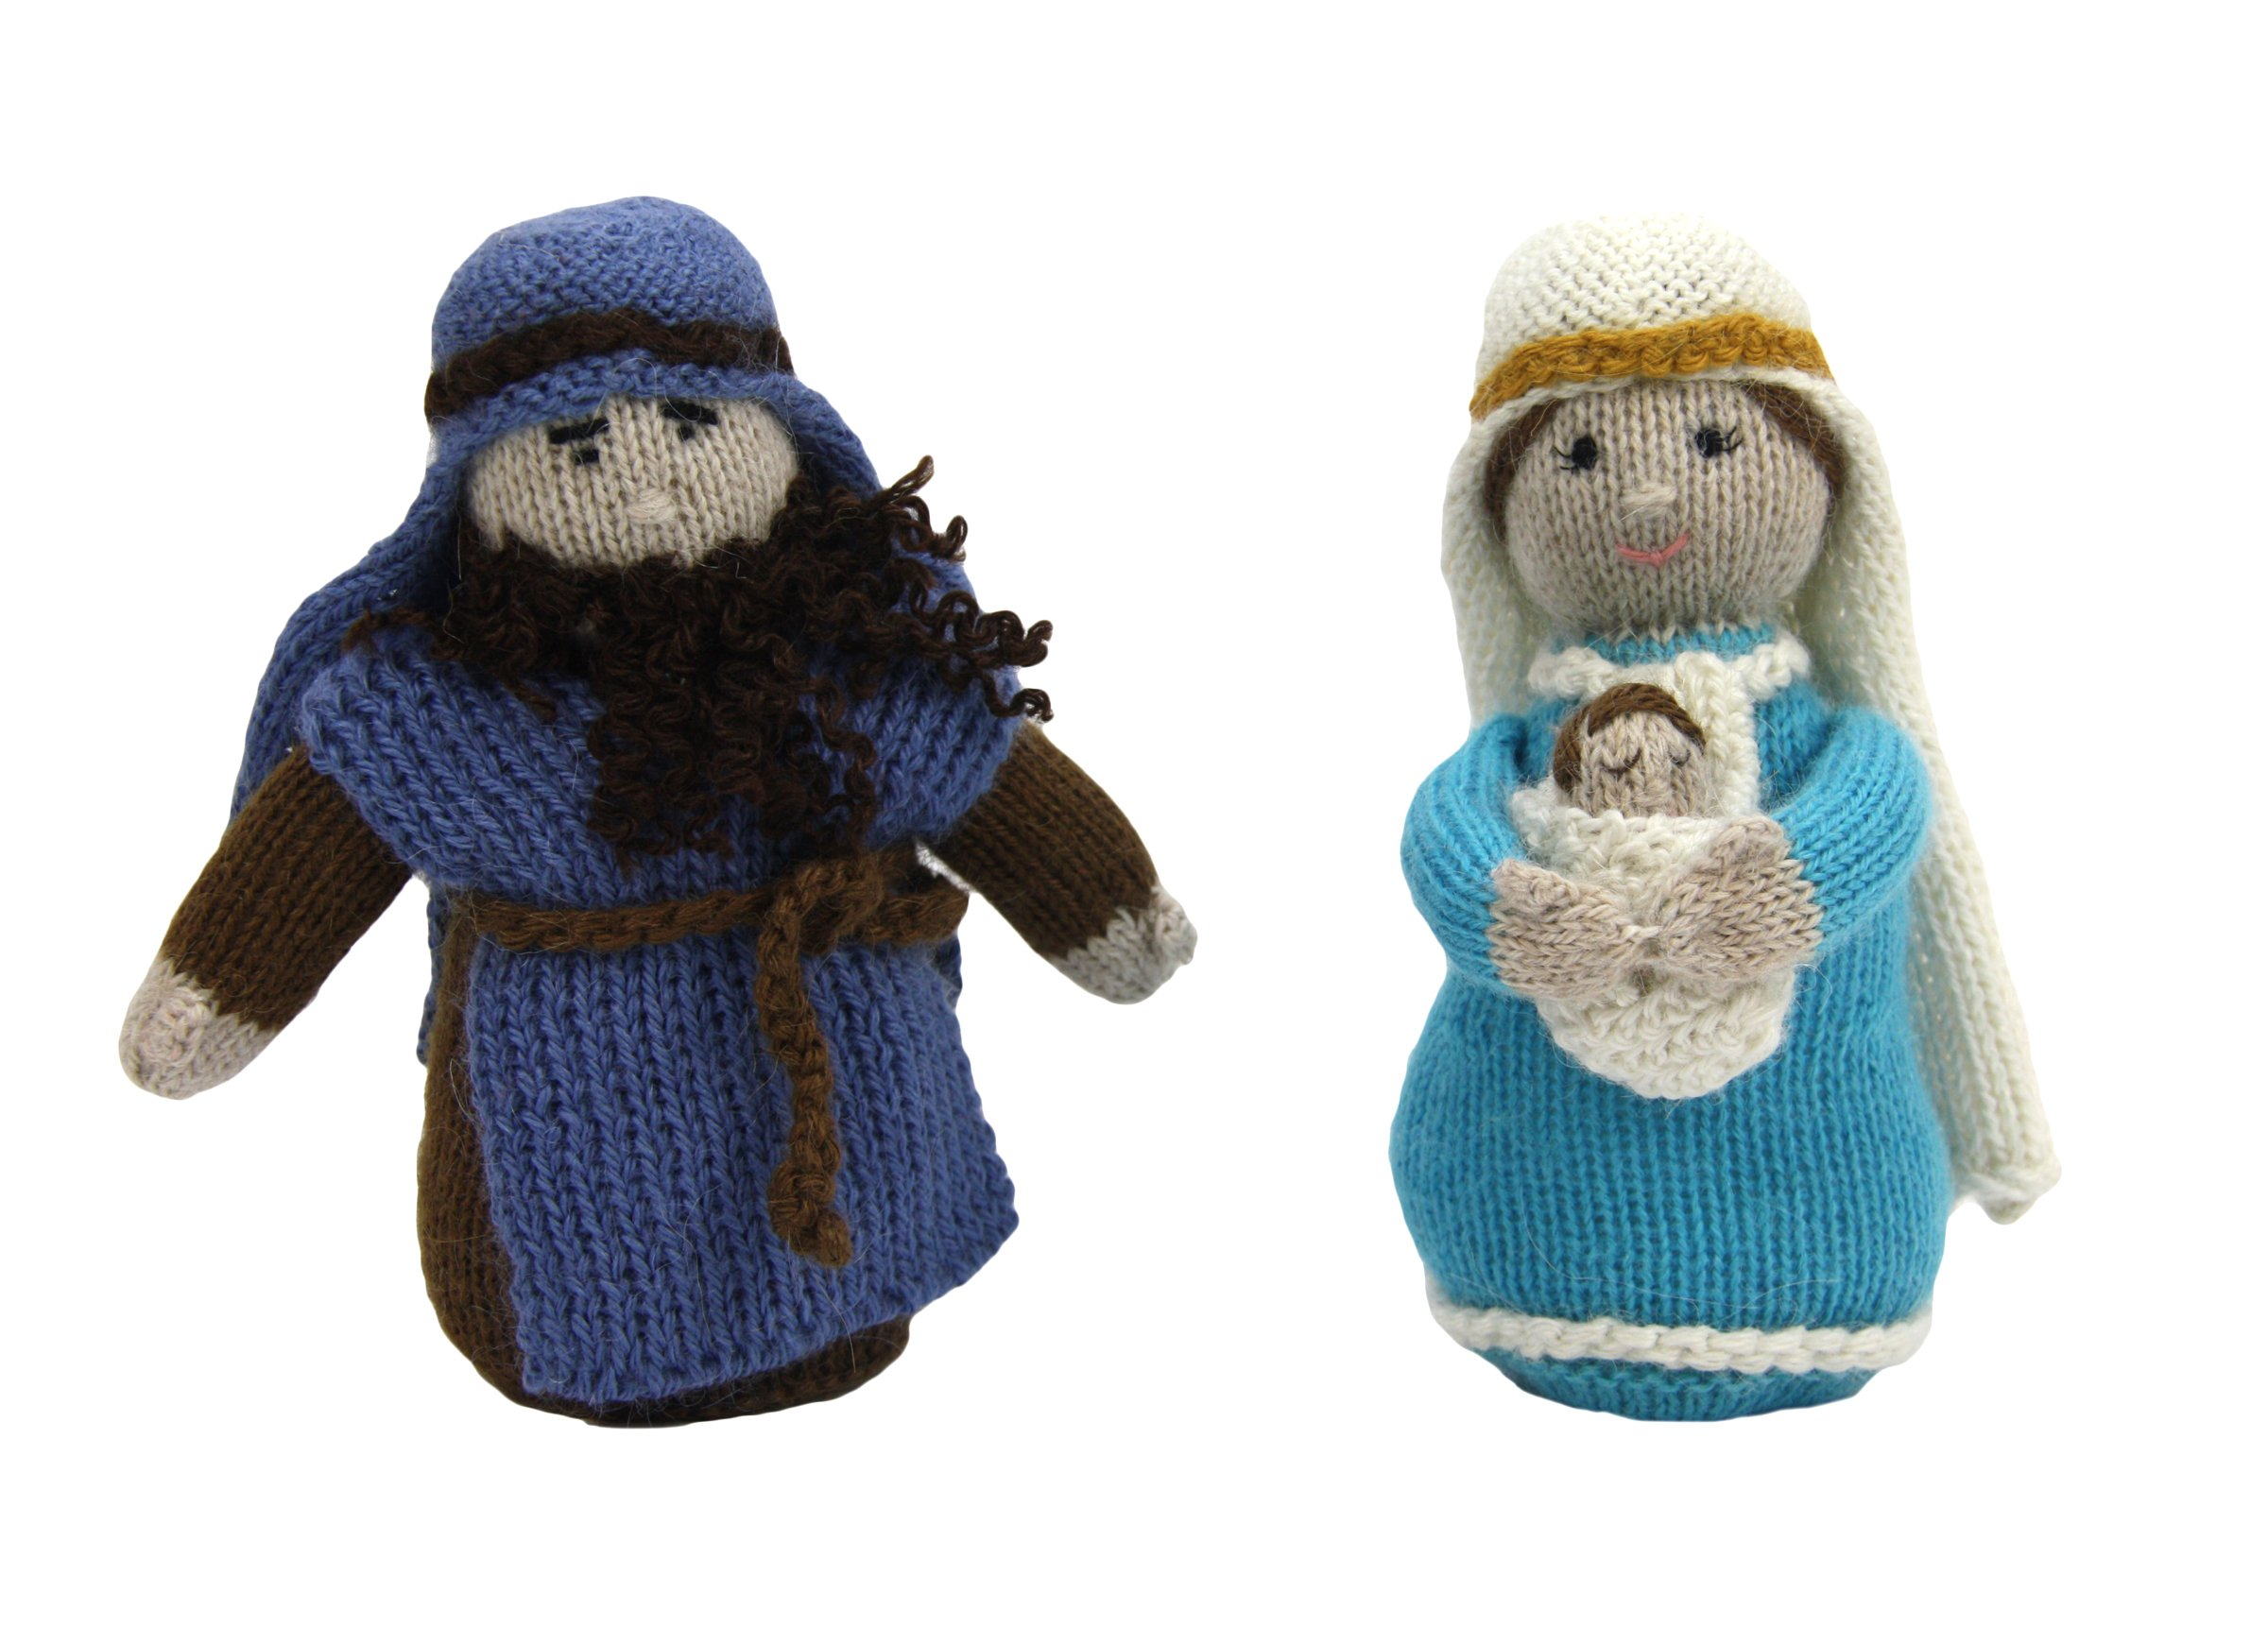 Fair Trade Hand Knit Soft Alpaca Holy Family Nativity Set with 3 Pieces From Peru, a Creche for All Ages